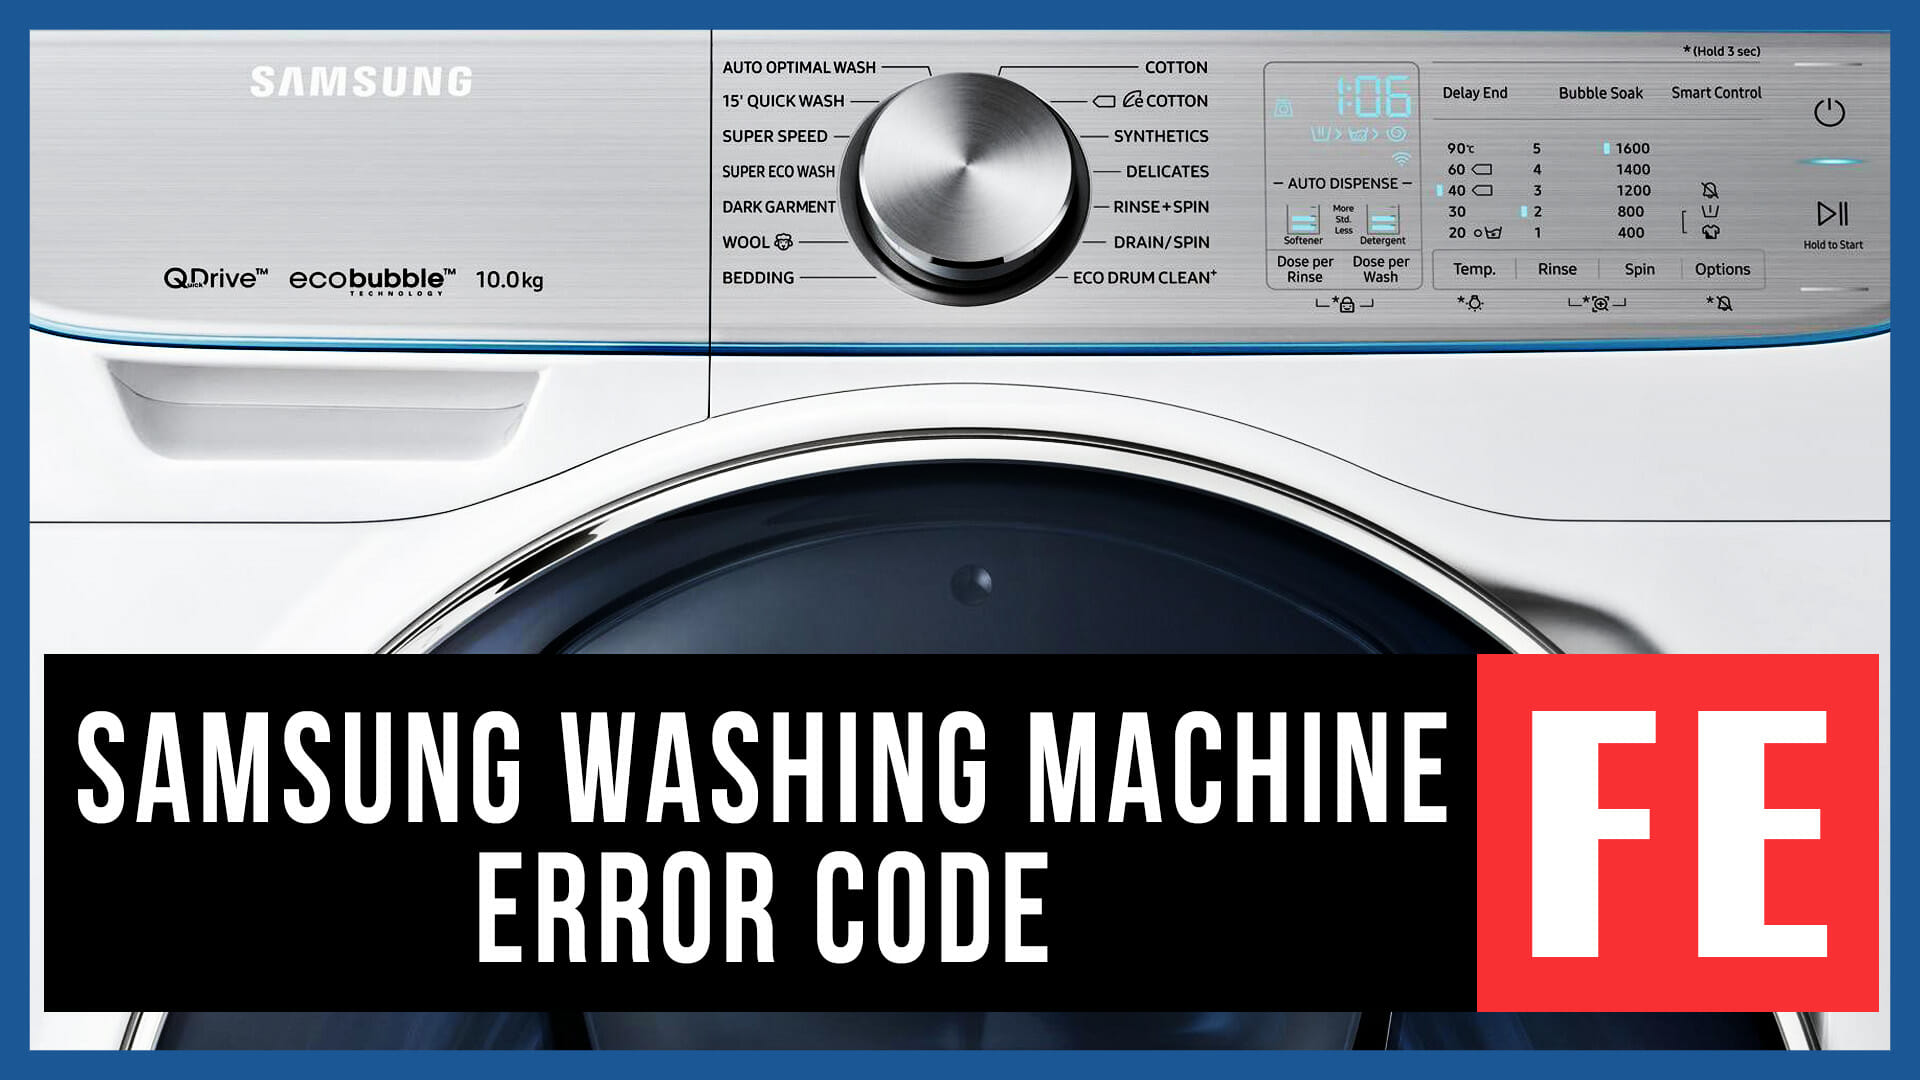 Samsung washer error code FE | Causes, How FIX Problem